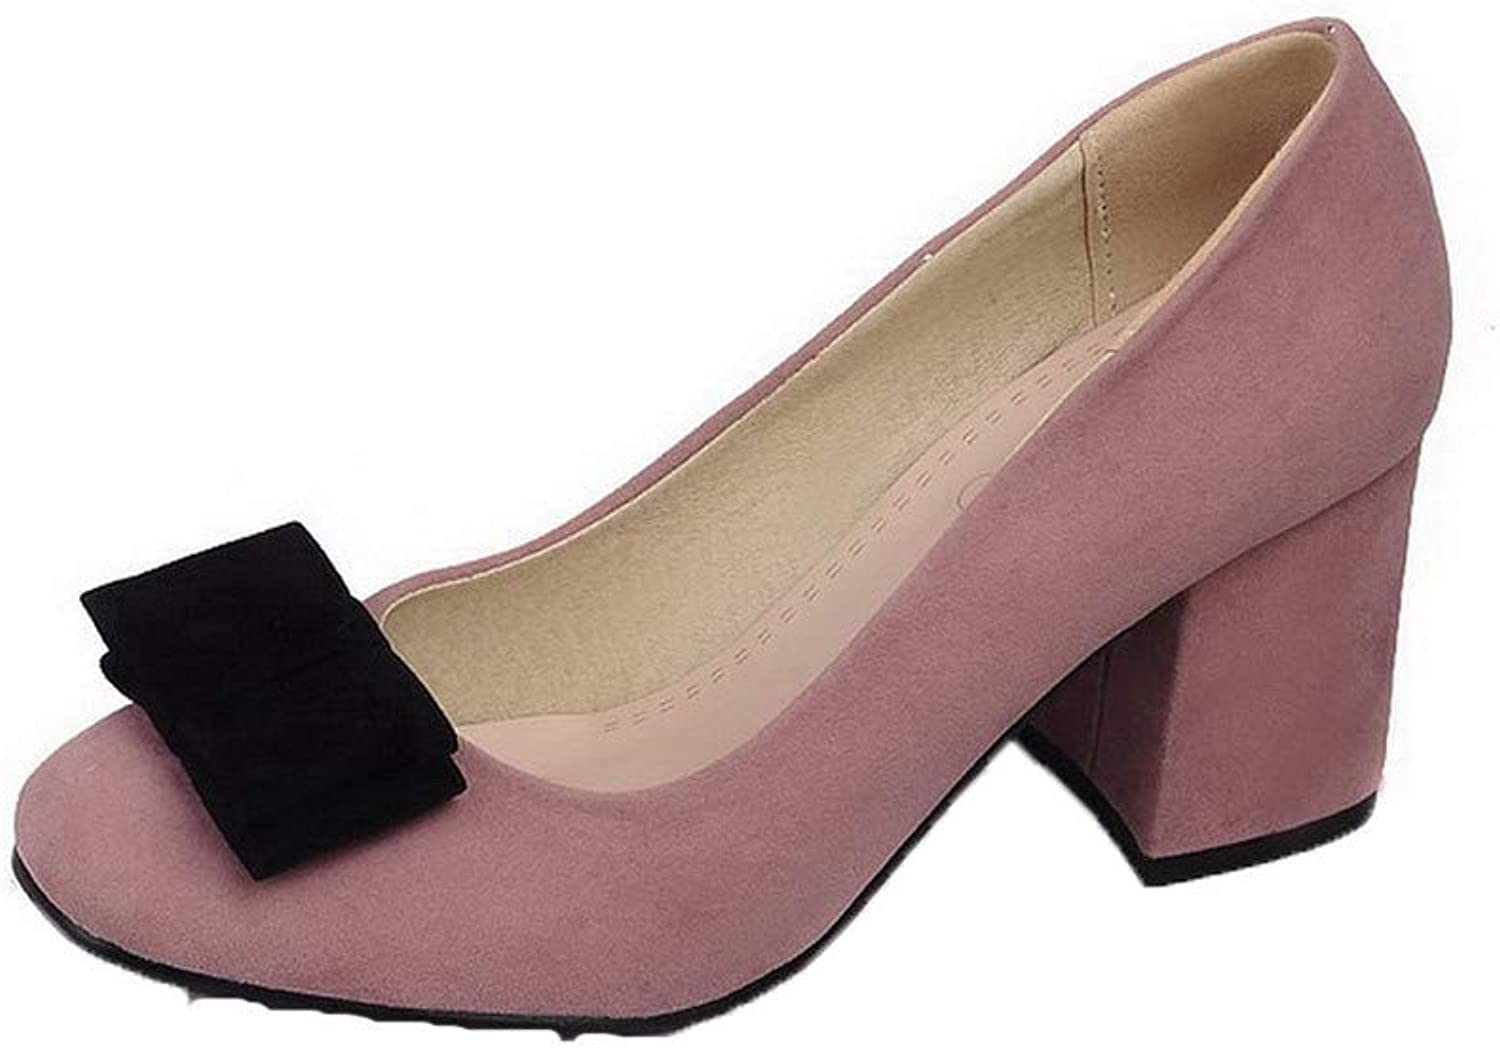 AllhqFashion Women's Square Toe Kitten-Heels Frosted Solid Pull-On Pumps-shoes, FBUDD010841